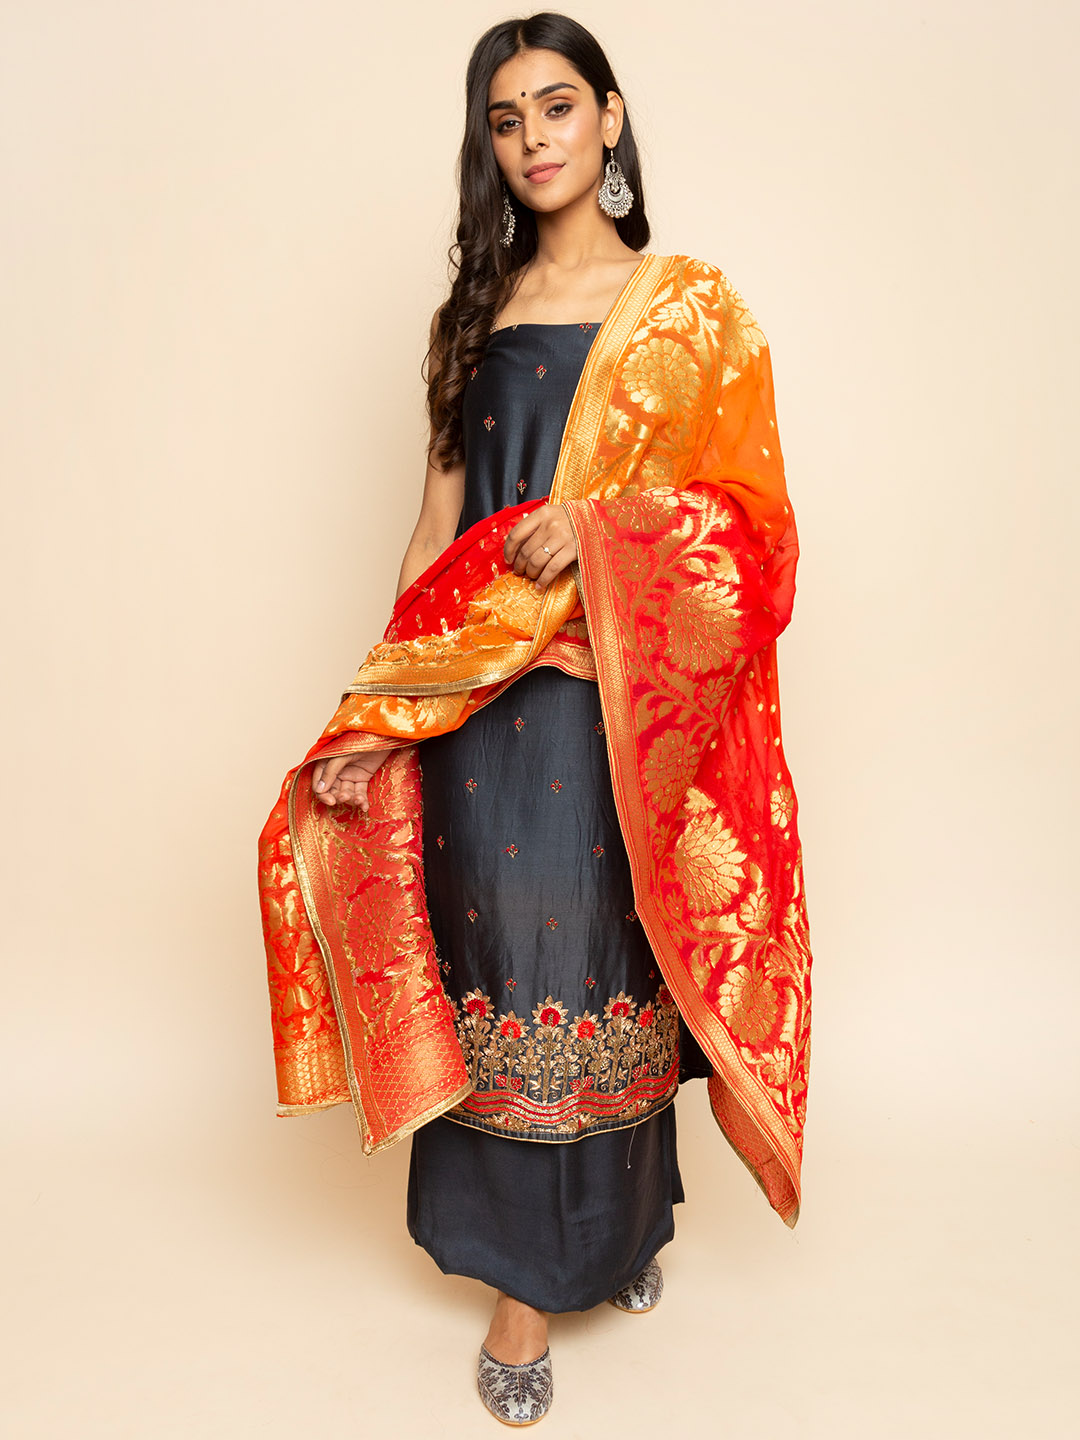 Handwork Embroidery Suit